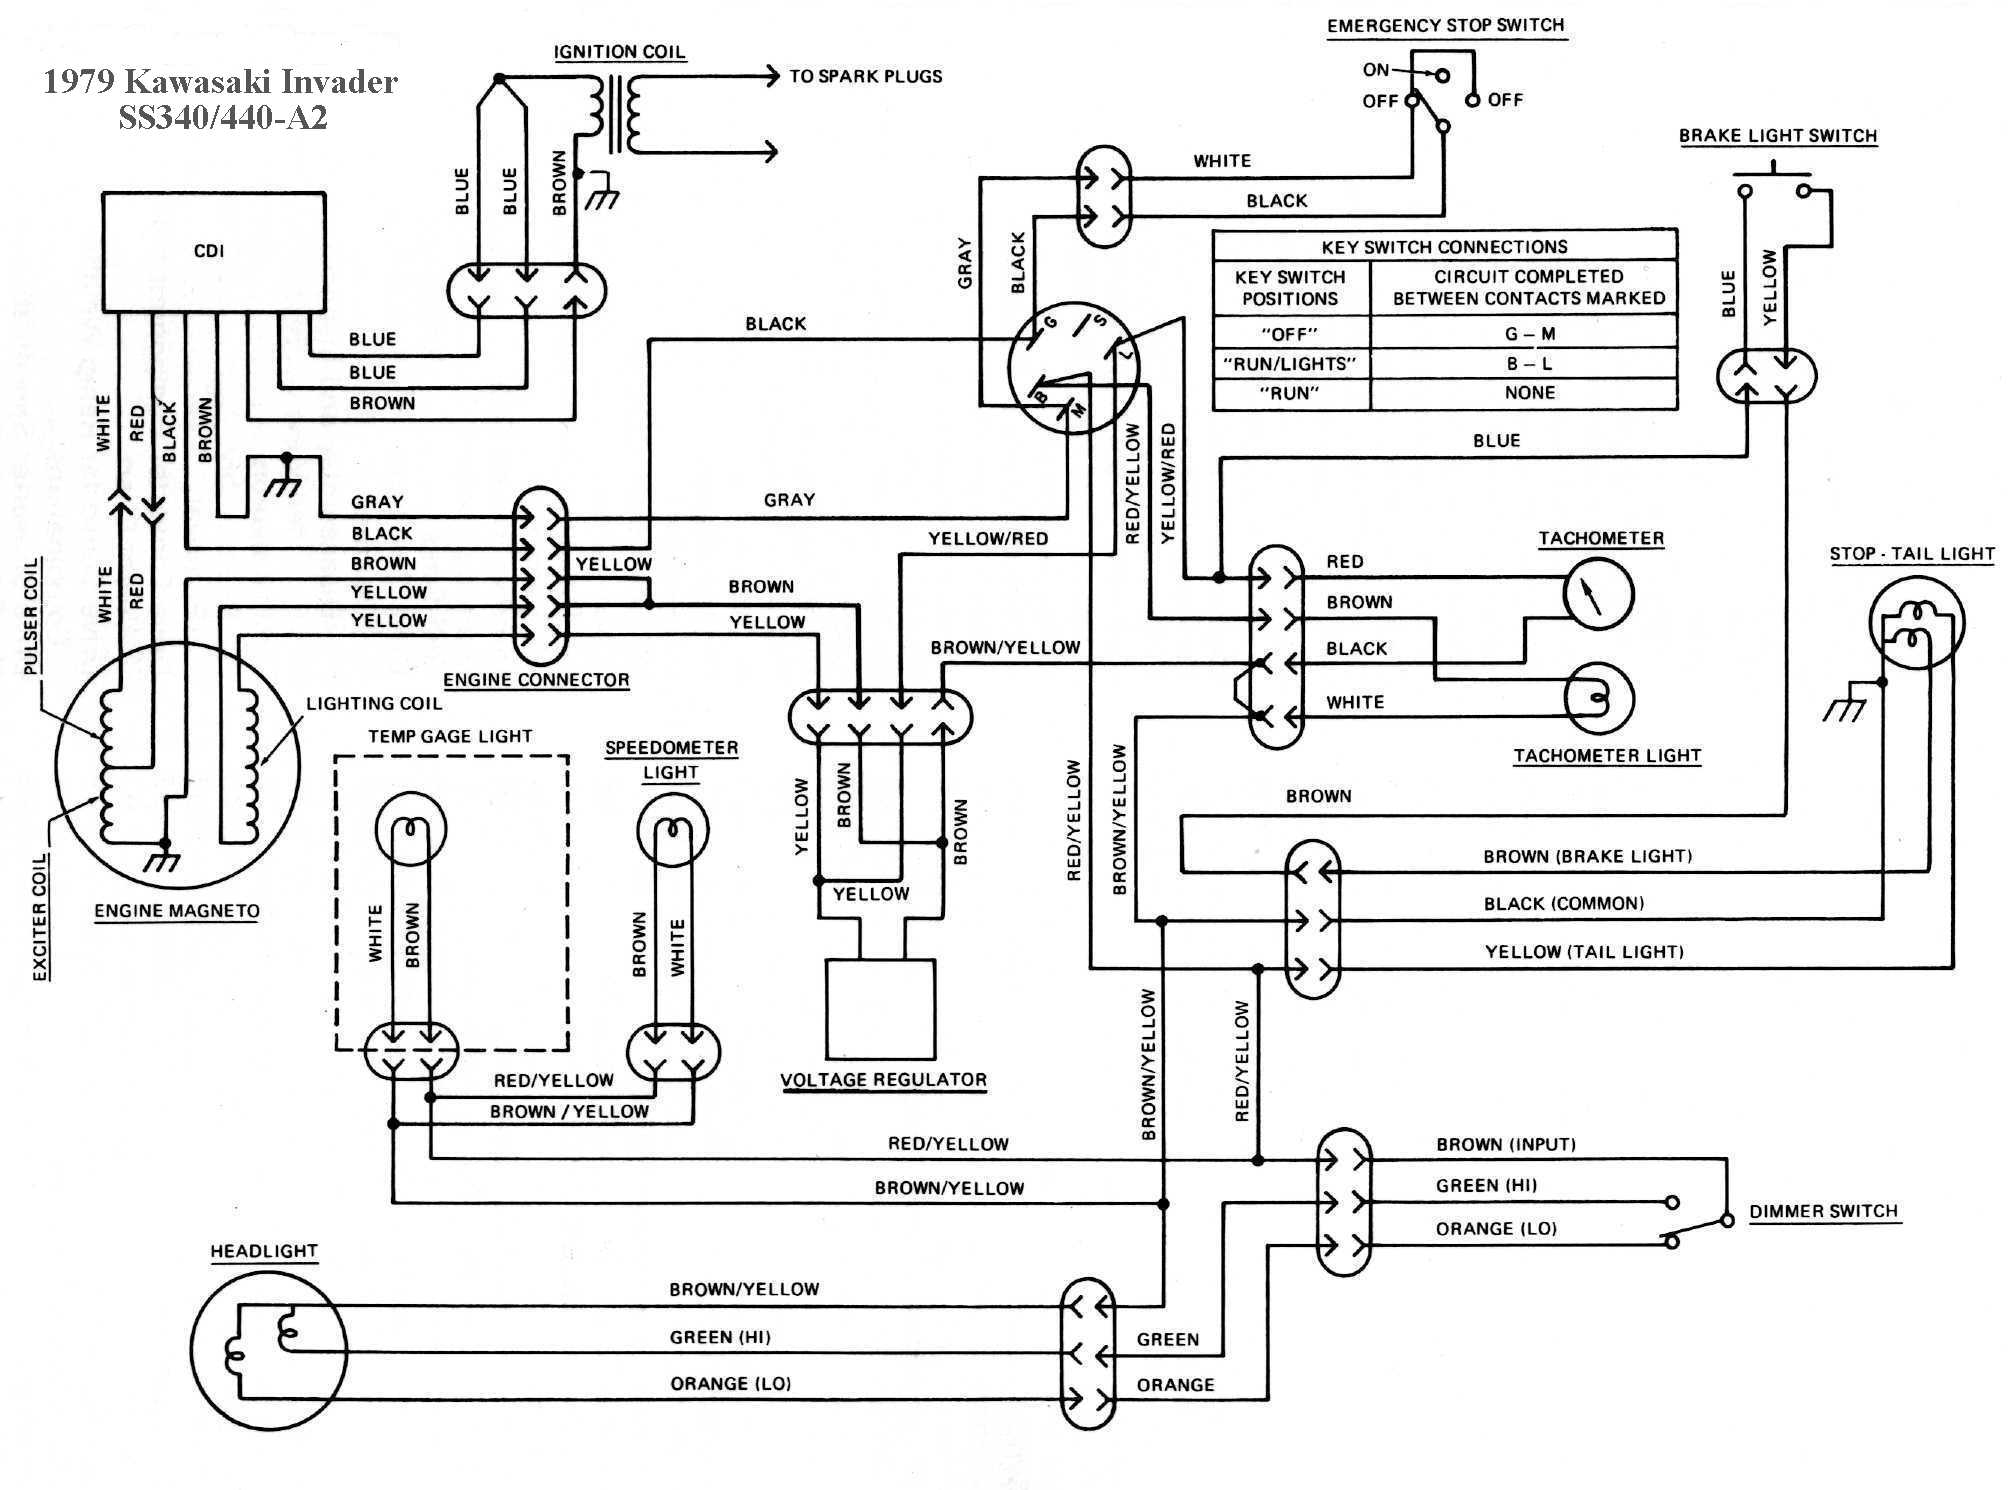 ss340a2 kawasaki invader snowmobile wiring diagrams bayou 300 wiring diagram at gsmx.co